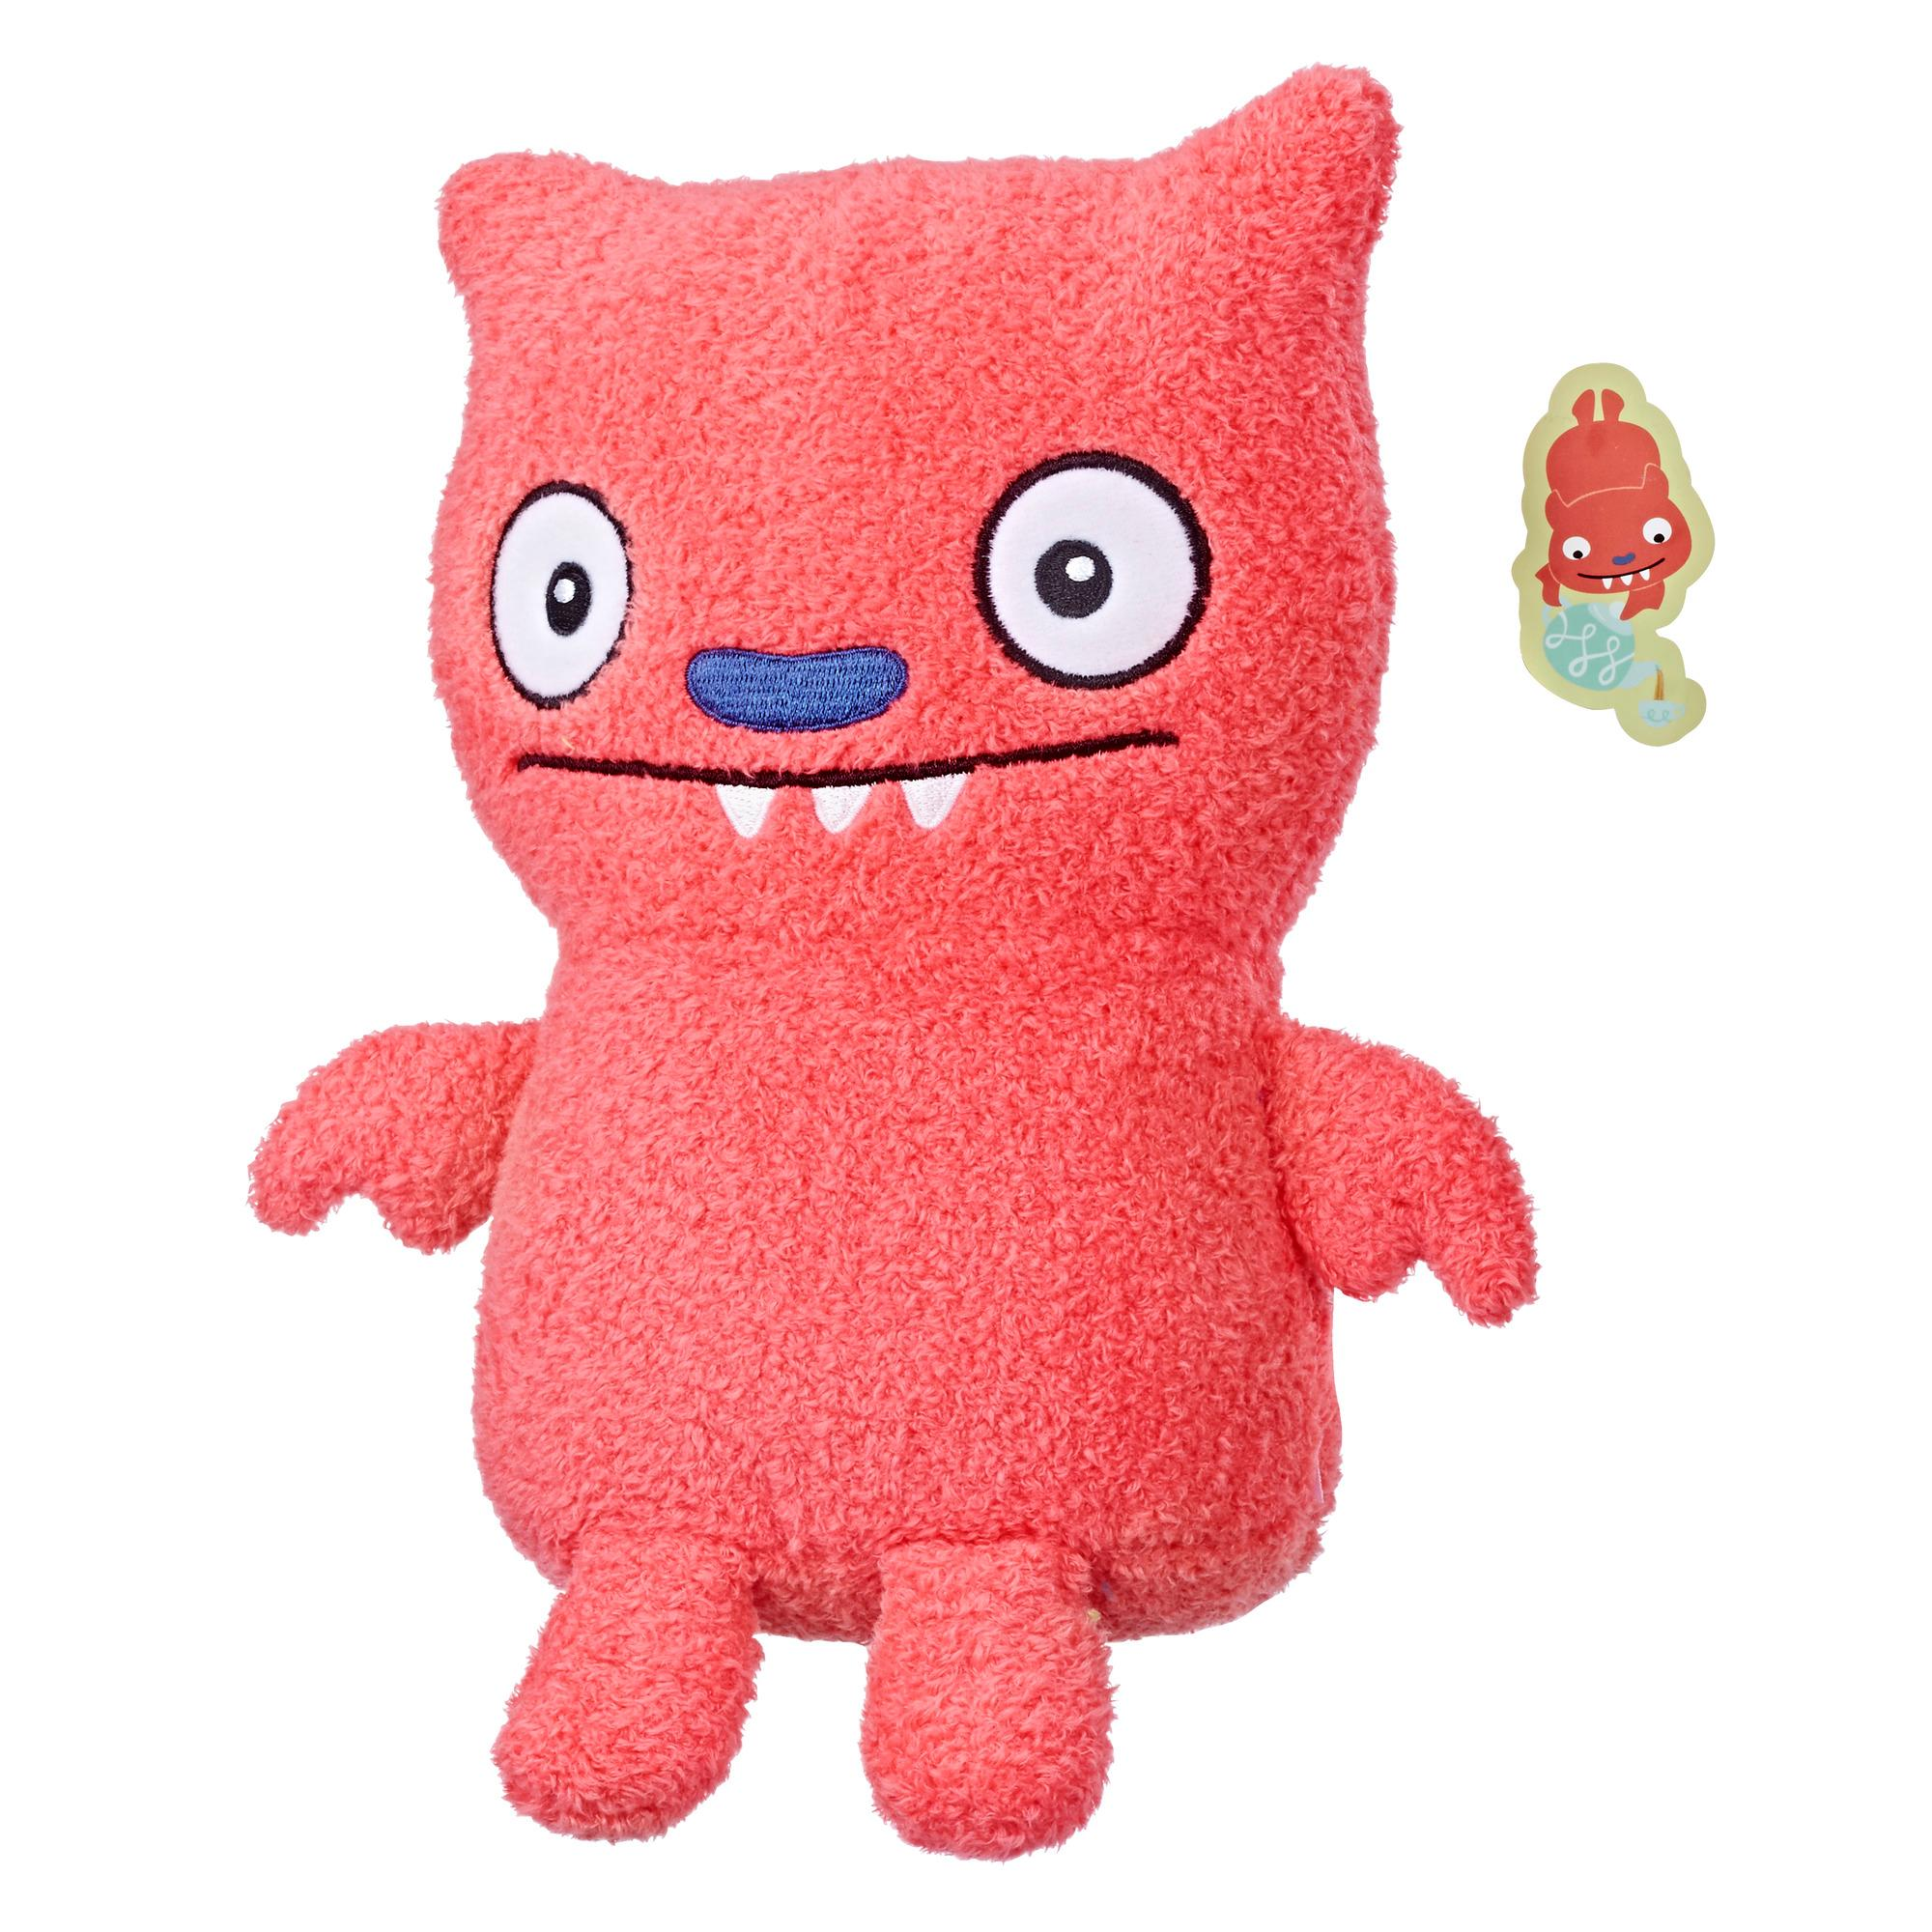 UglyDolls With Gratitude Lucky Bat Stuffed Plush Toy, 23 cm. tall